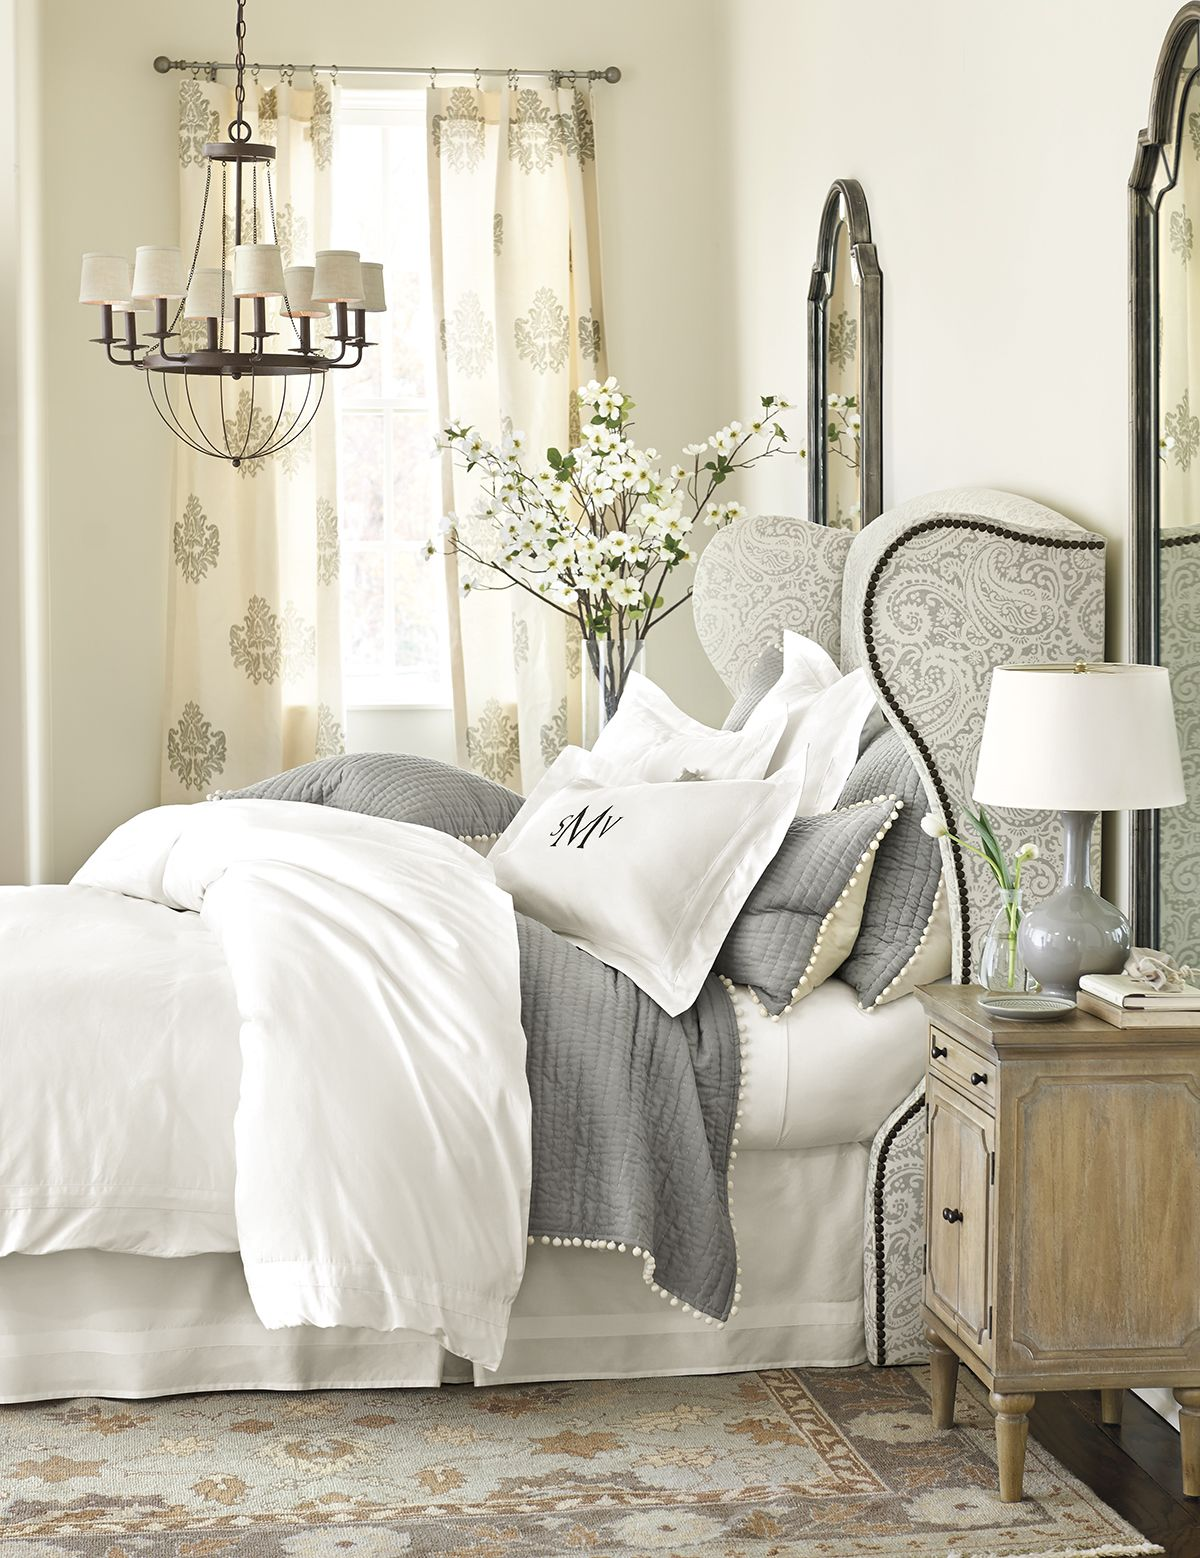 Neutral Bedroom Decorating Sour Cream Pound Cake Cupcakes Recipe Neutral Bedrooms